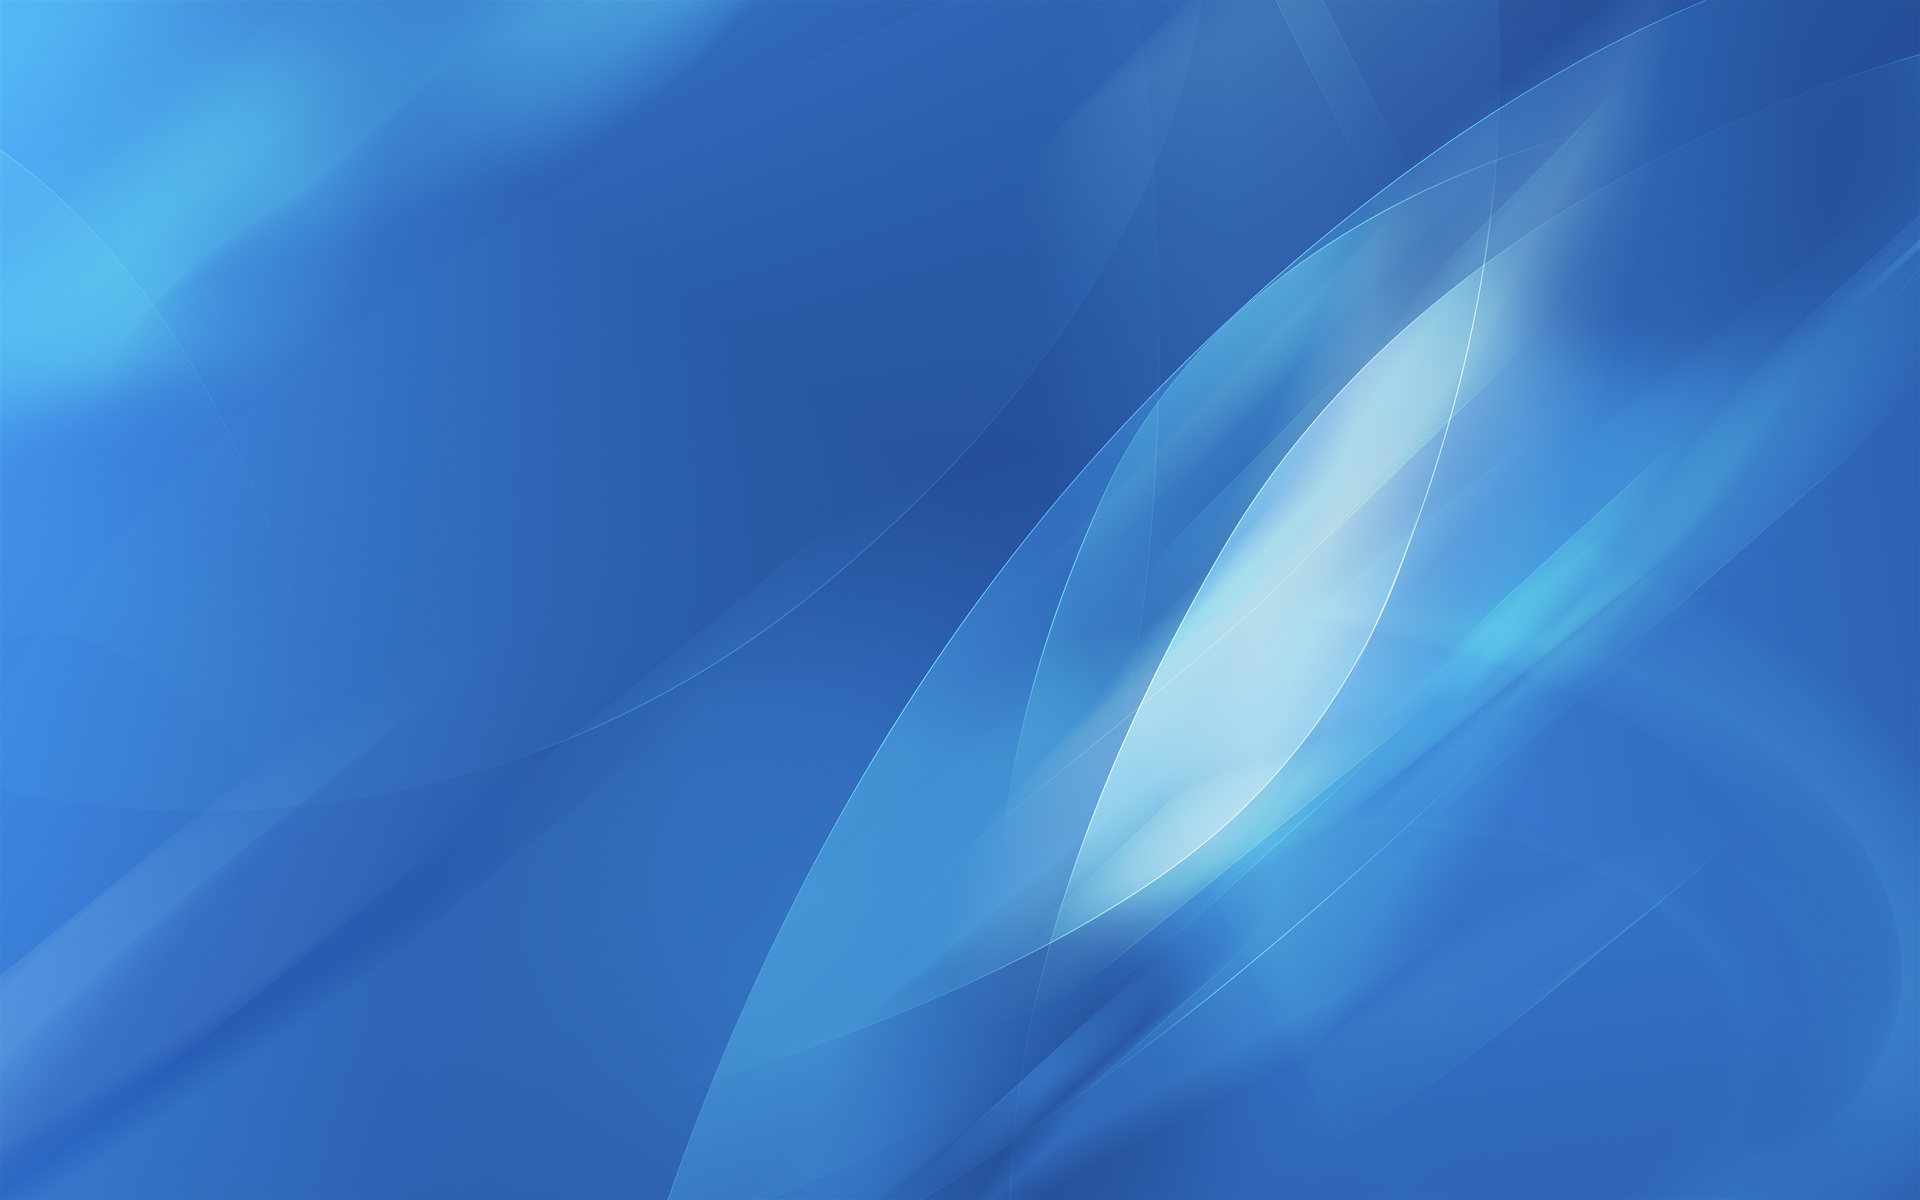 Abstract Blue Wallpapers HD Wallpapers 1920x1200